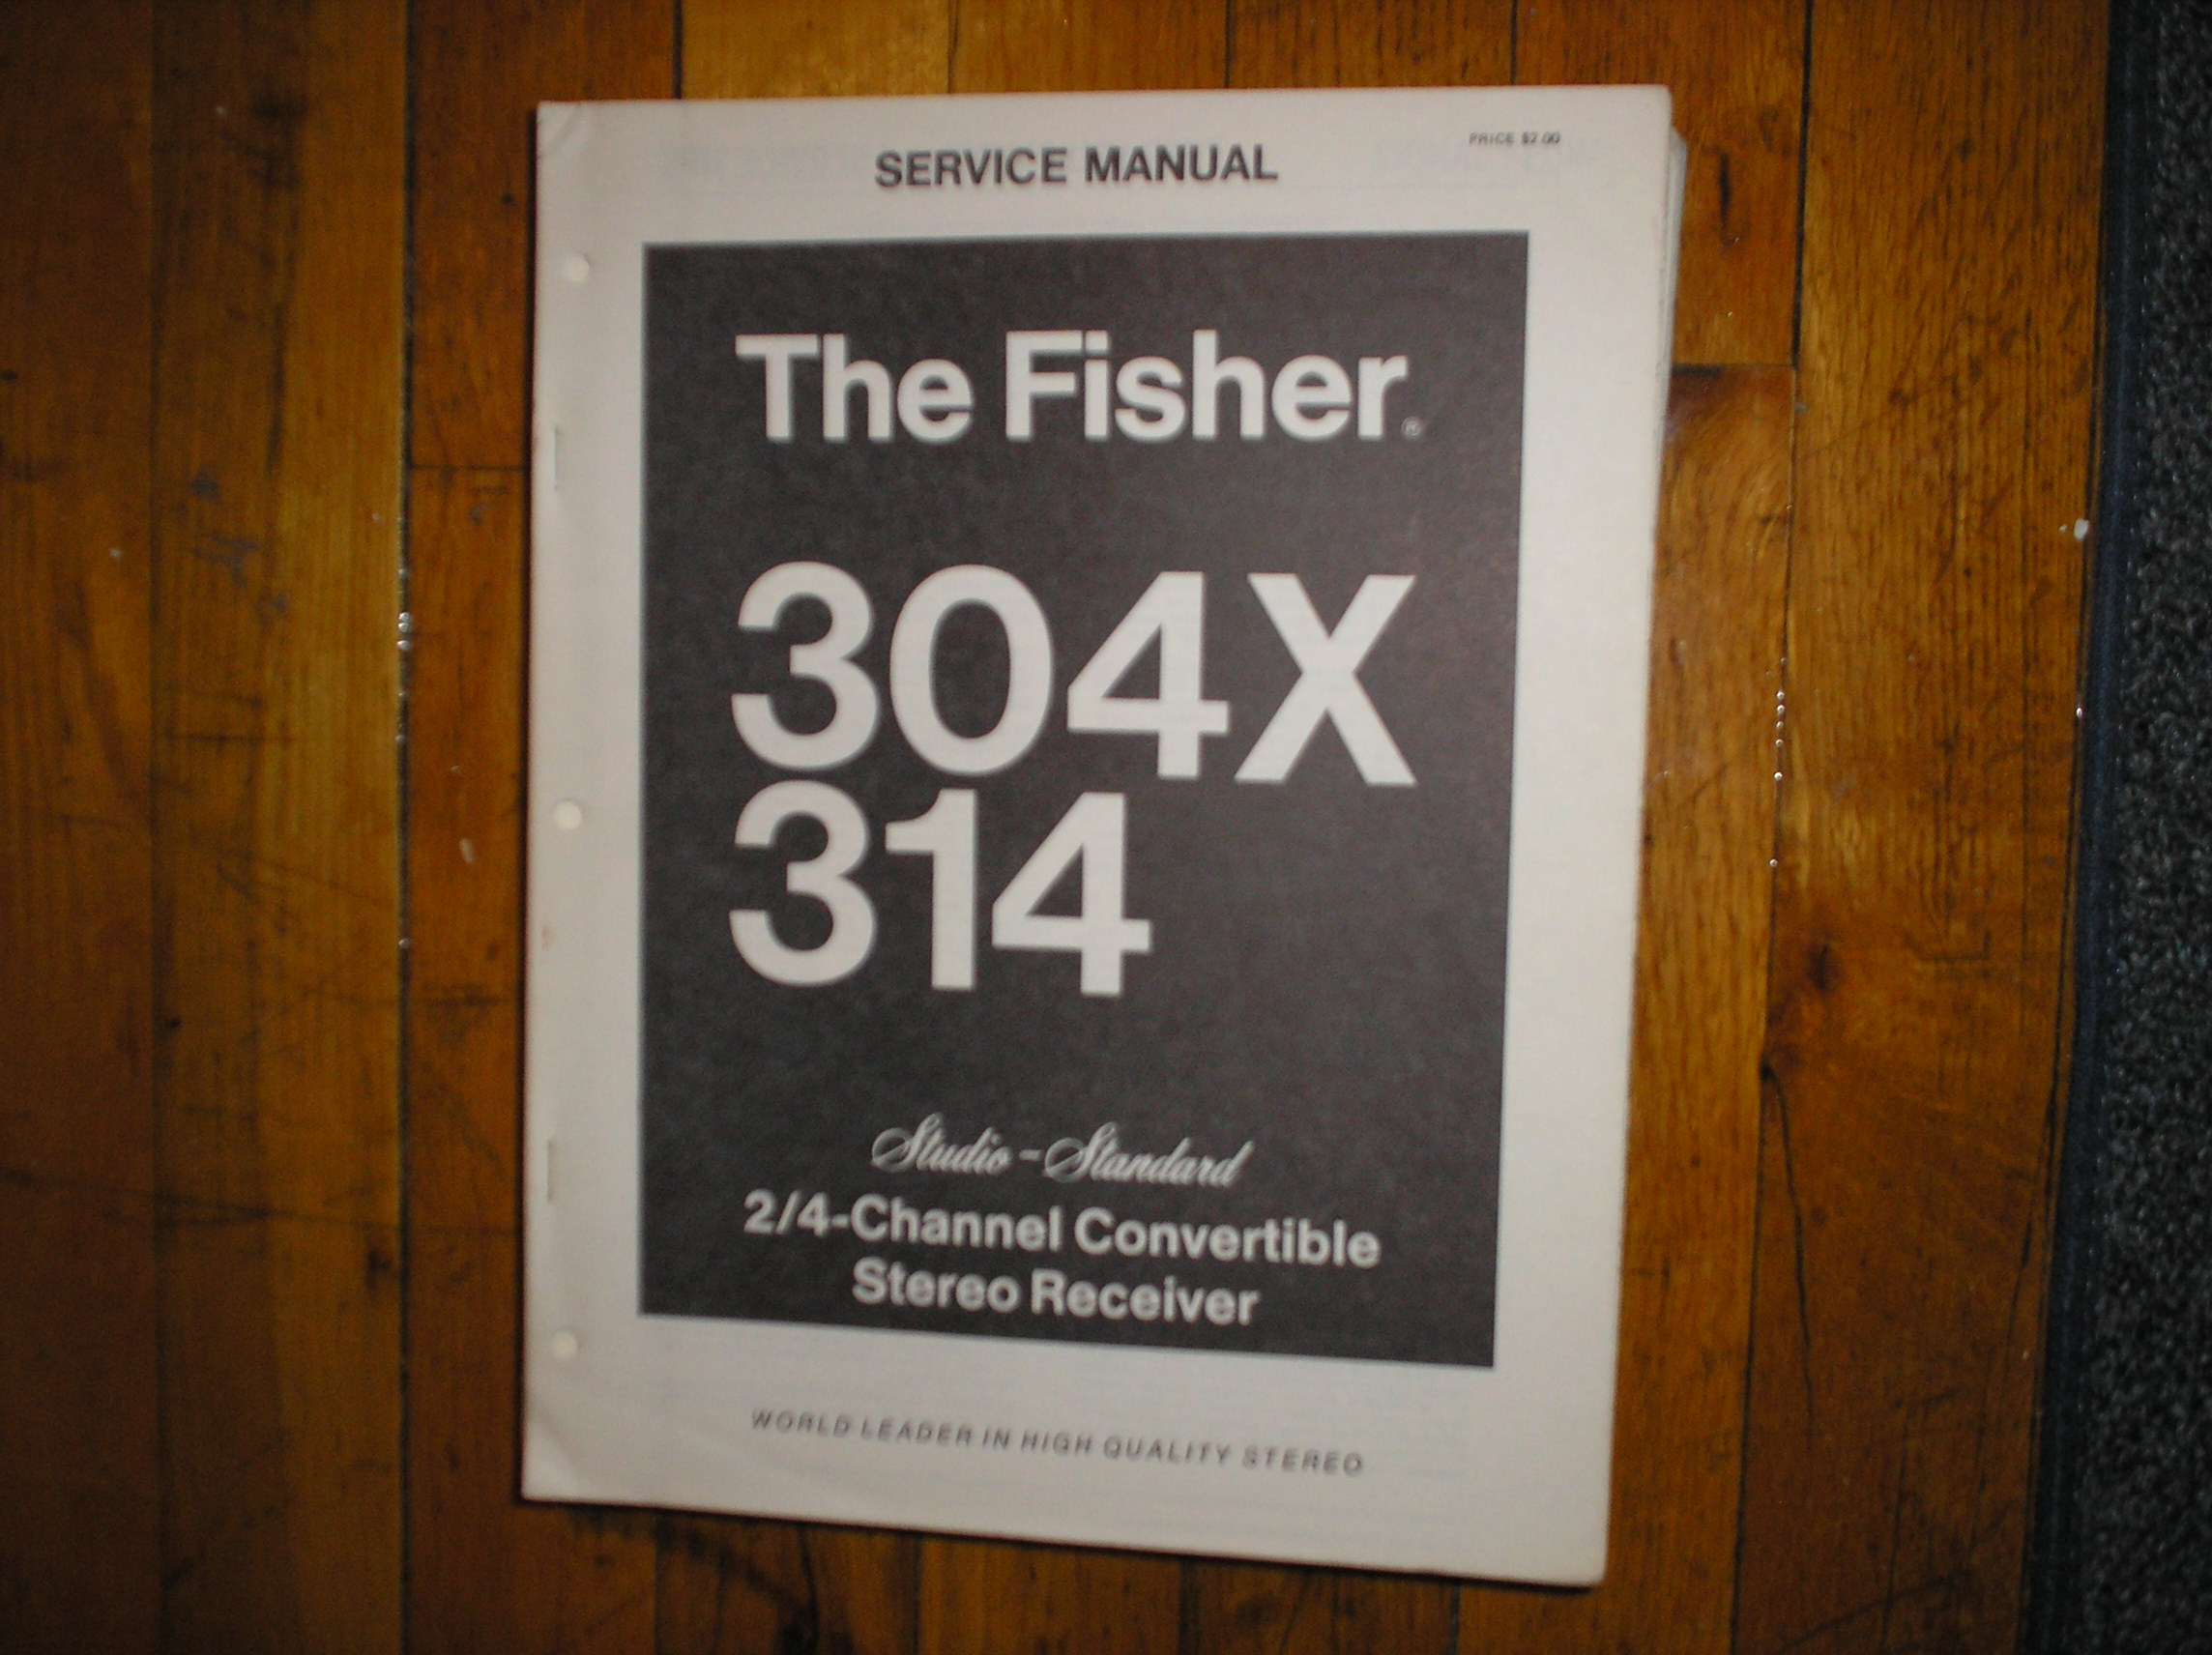 304X 314 Receiver Service Manual